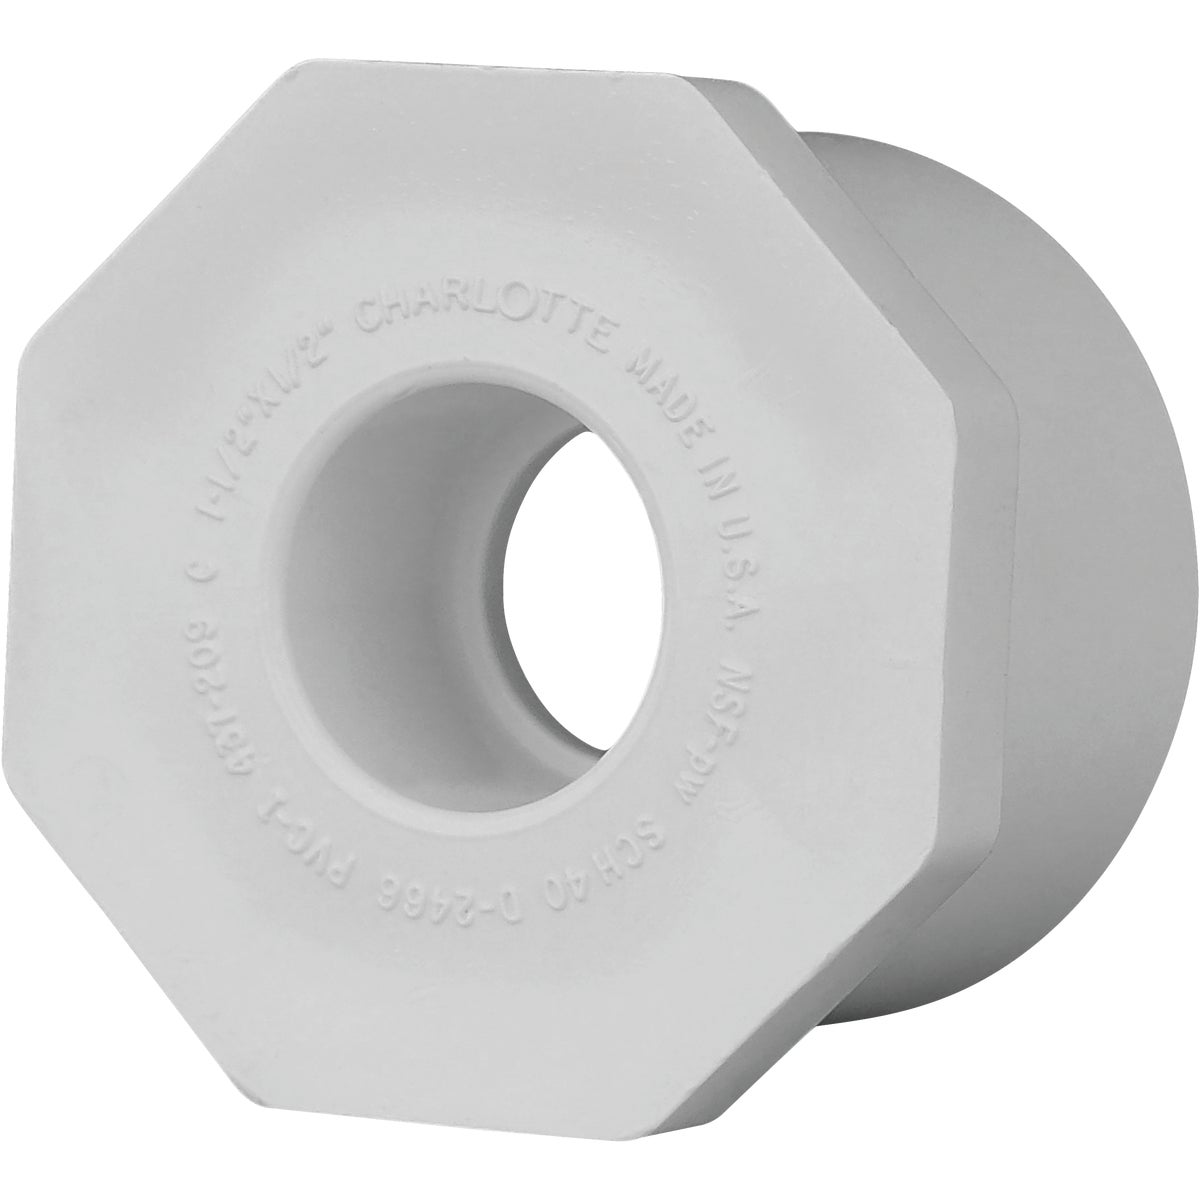 1-1/2X1/2 SPGXS BUSHING - 30255 by Genova Inc